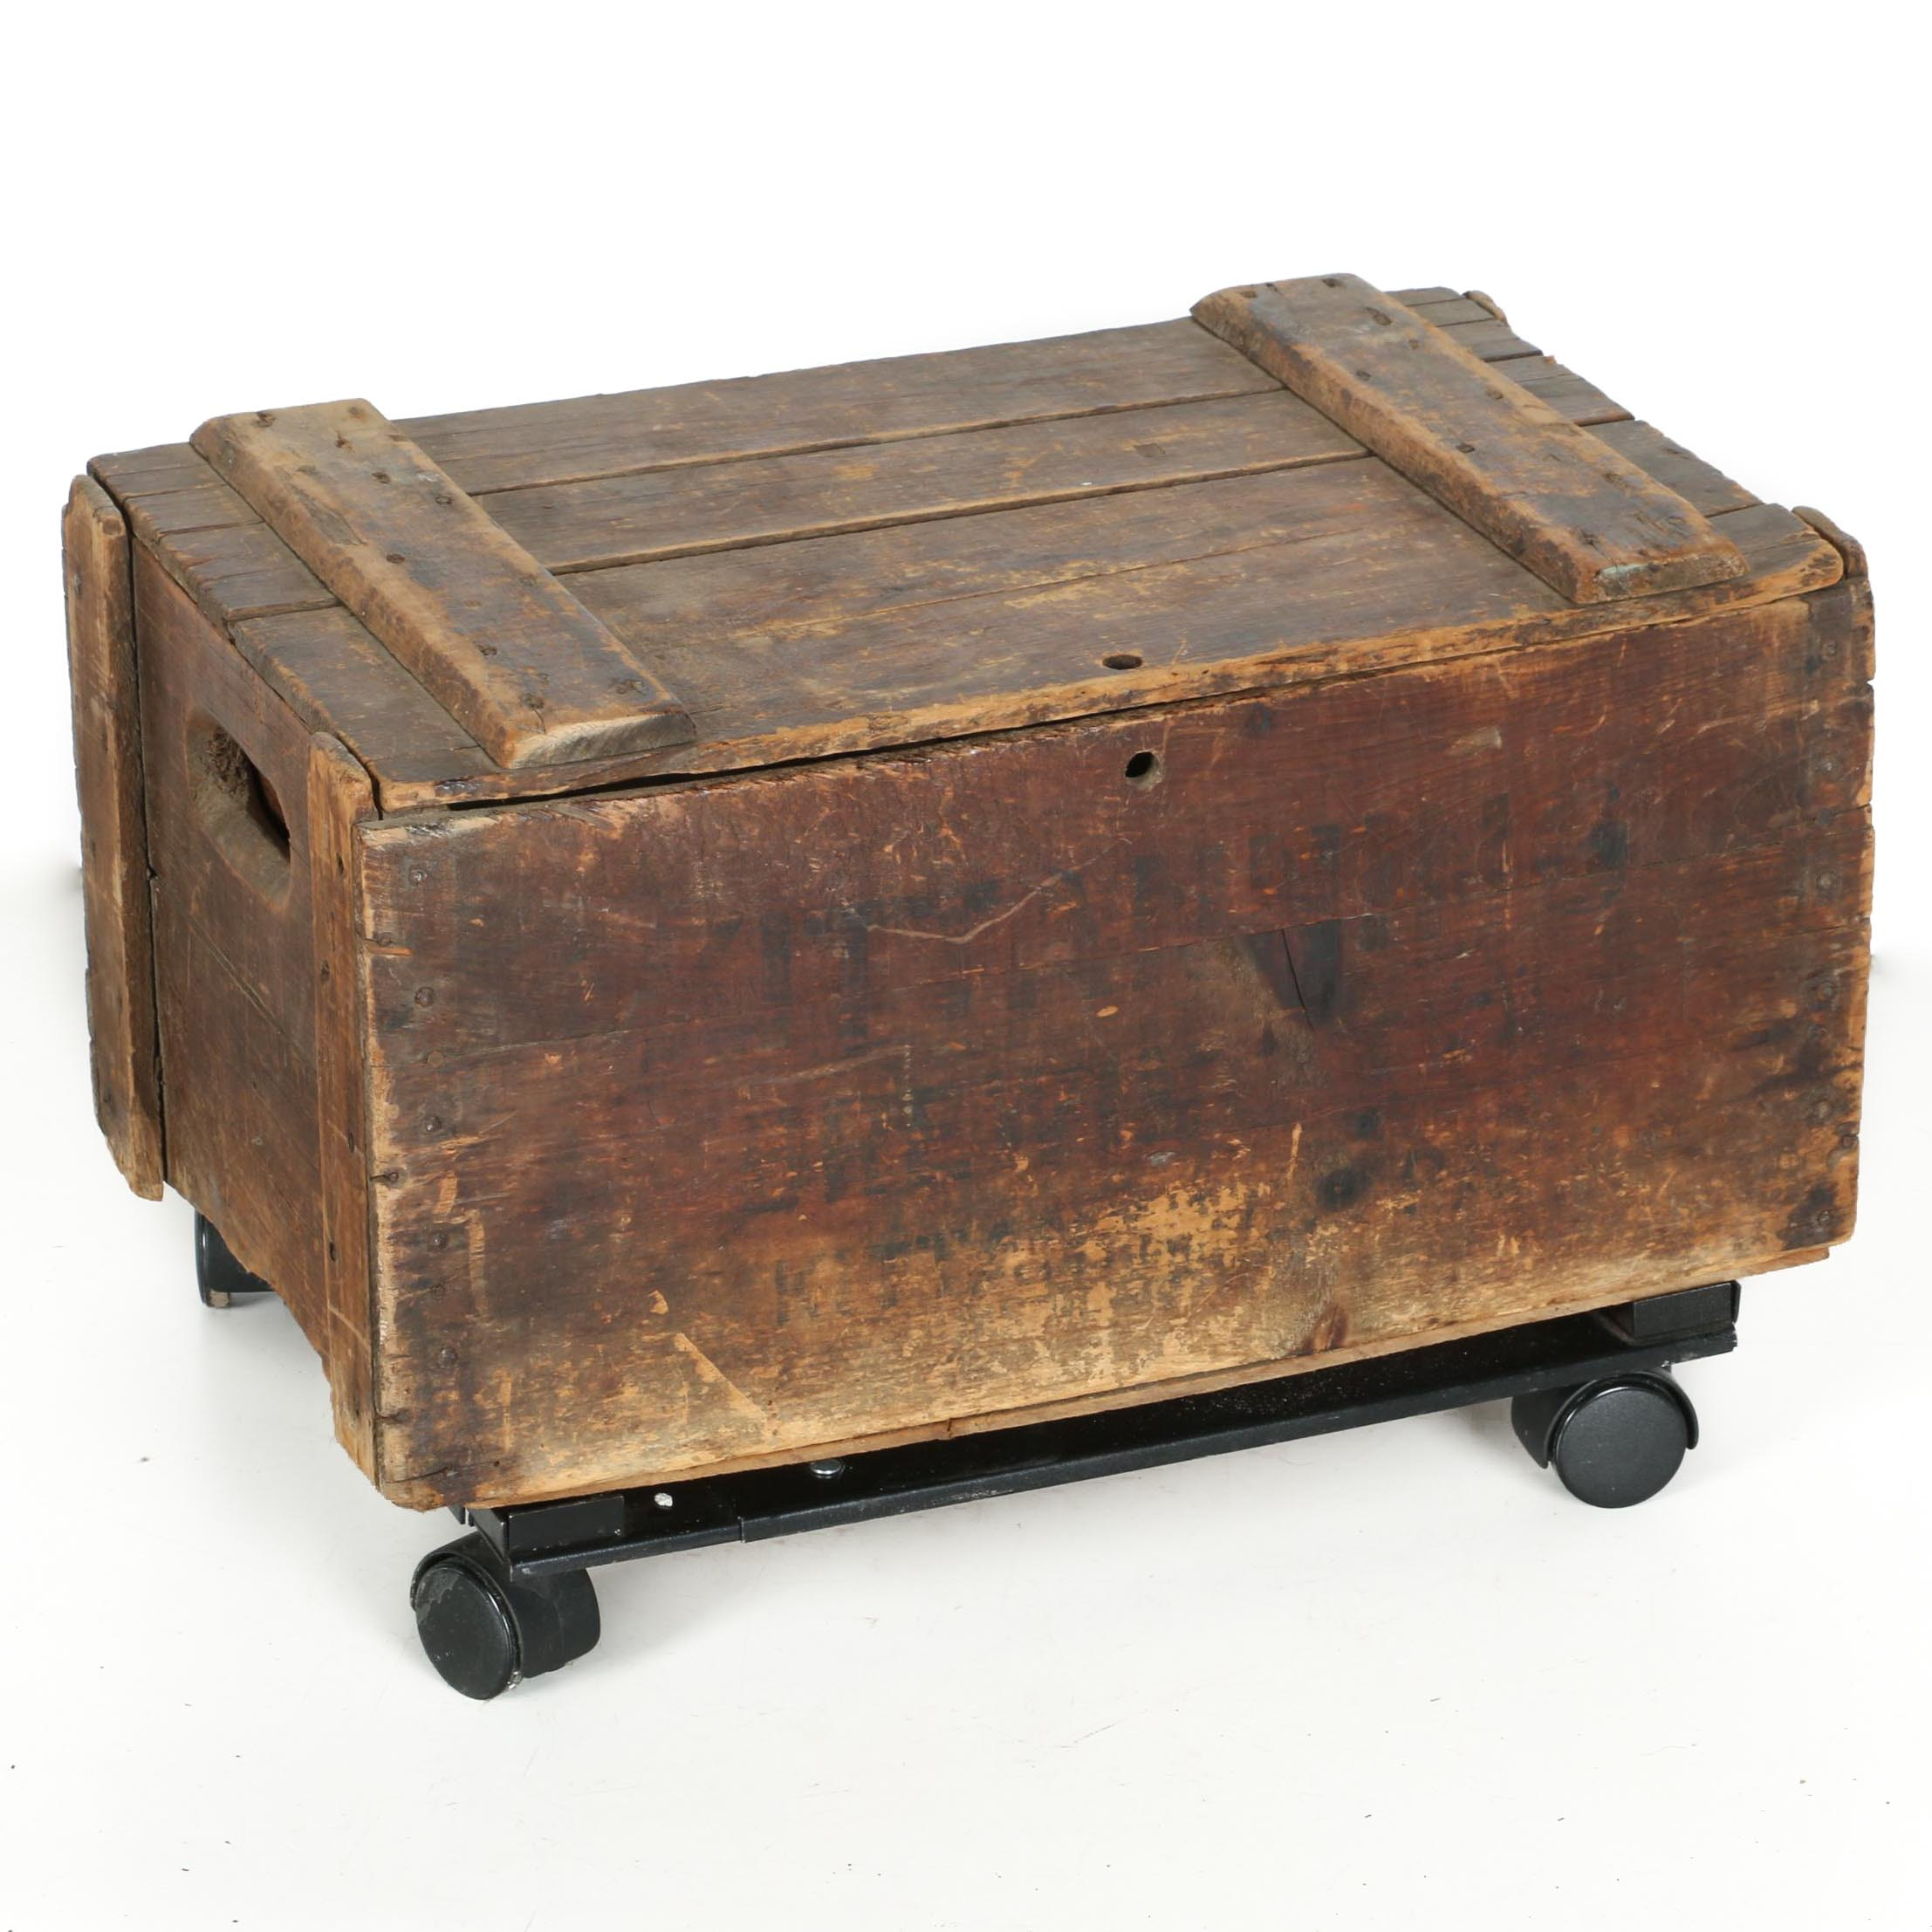 Vintage Wooden Crate on Contemporary Caster Base